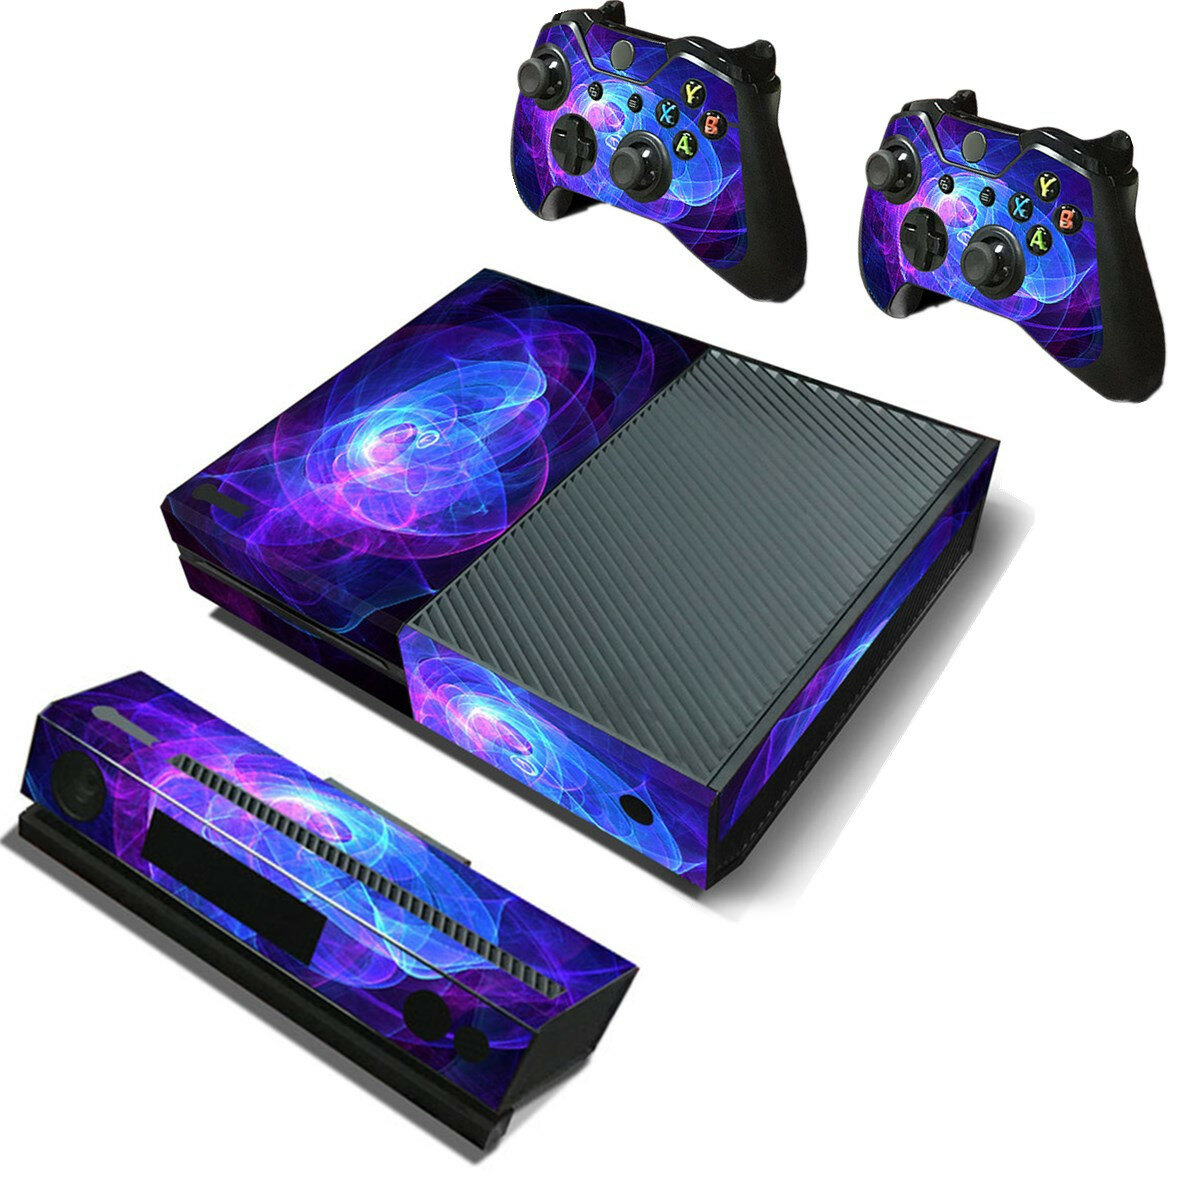 Soccer Models Xbox One S Sticker Console Decal Xbox One Controller Vinyl Skin Video Game Accessories